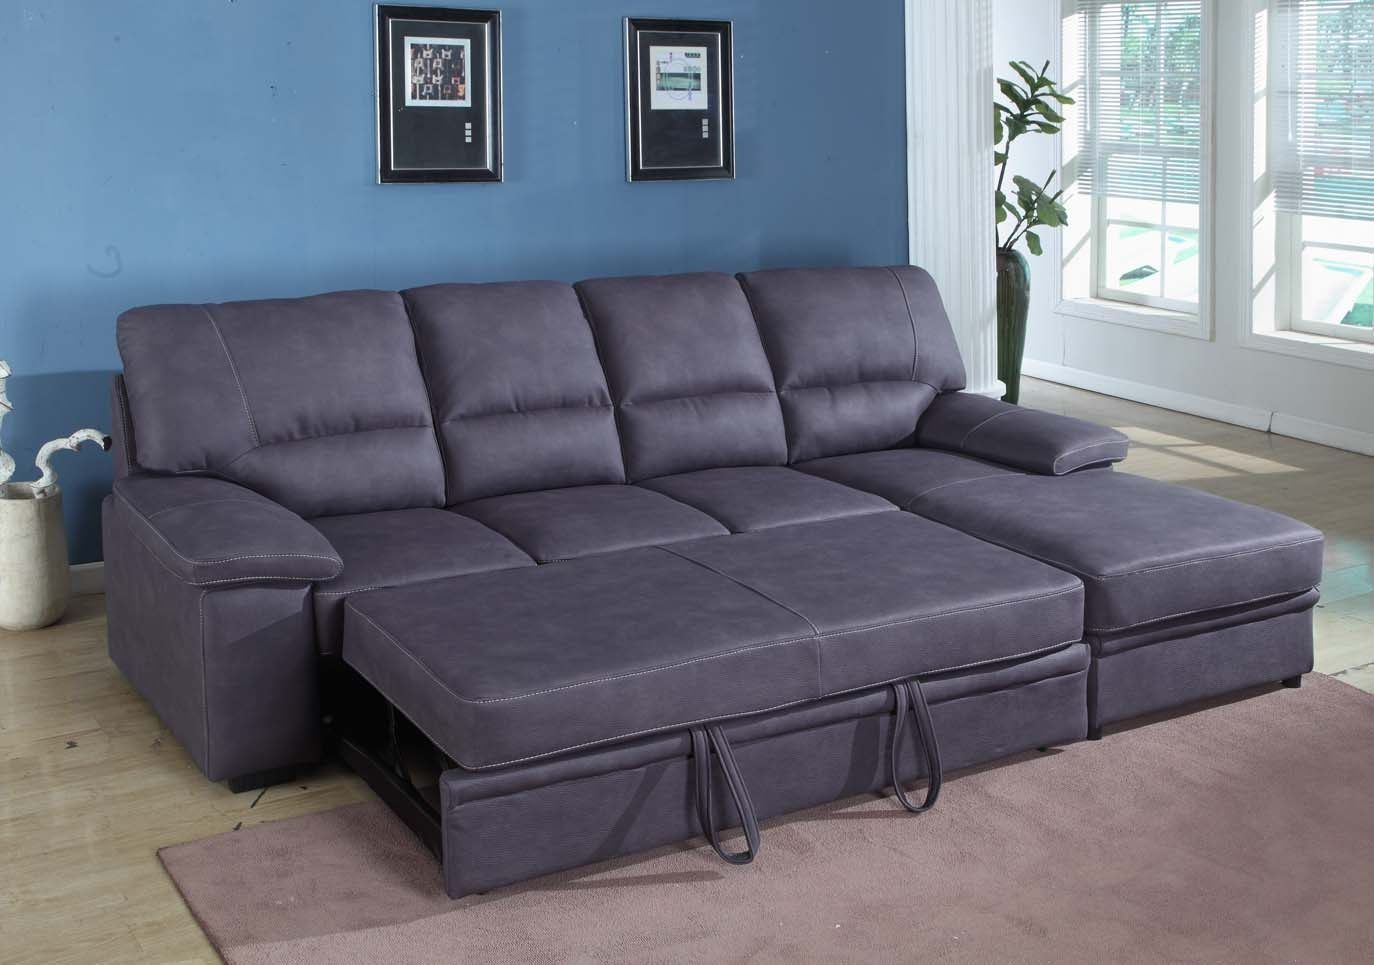 Awesome Comfy Sectionals Fresh 97 About Remodel Modern Sofa Inspiration With